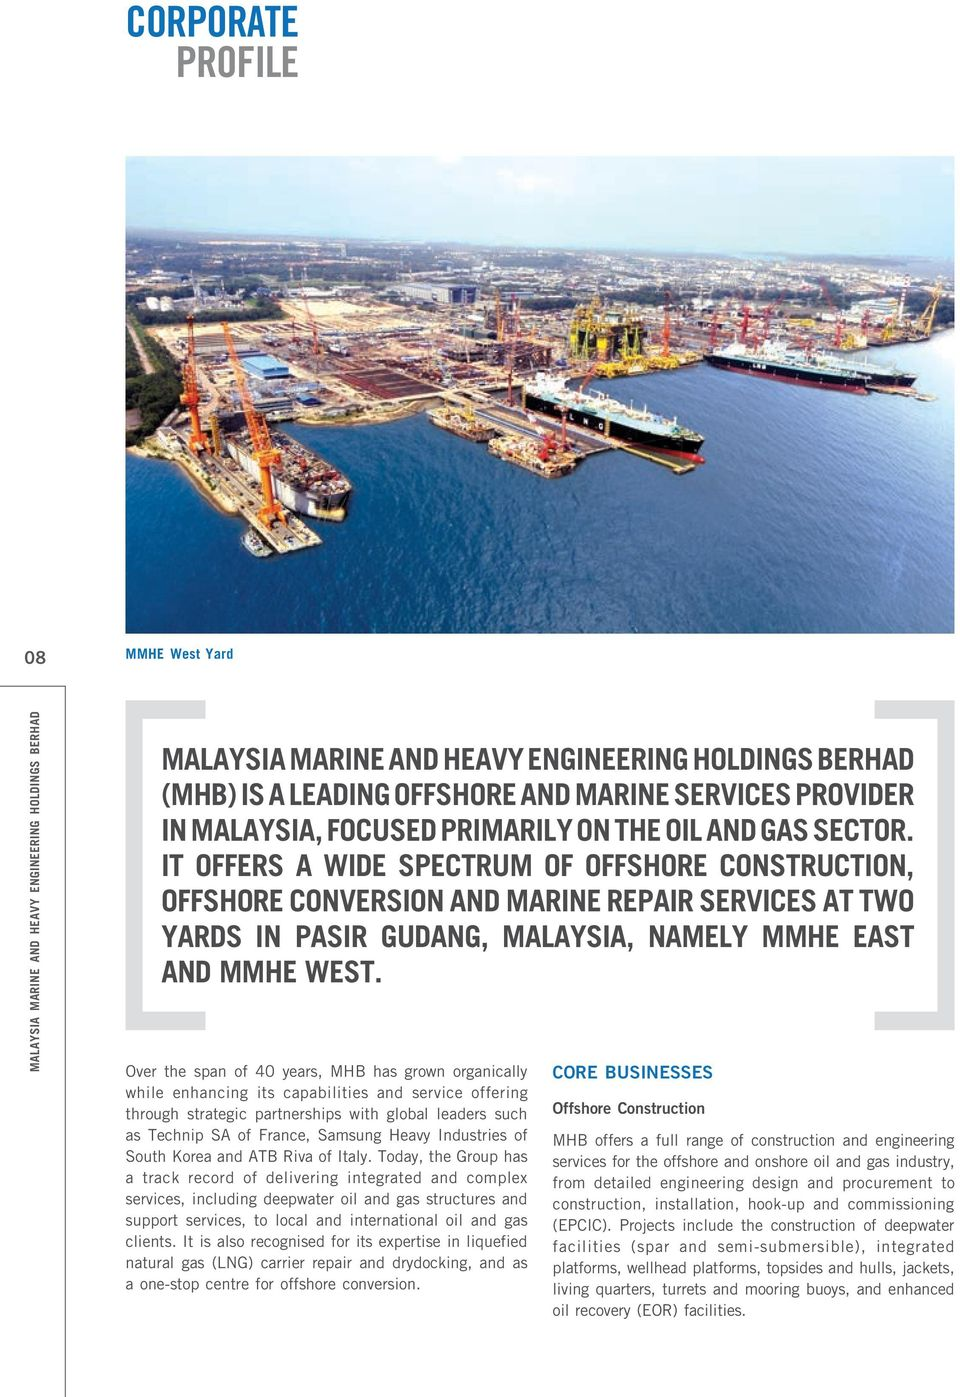 It offers a wide spectrum of offshore construction, offshore conversion and marine repair services at two yards in Pasir Gudang, Malaysia, namely MMHE East and MMHE West.